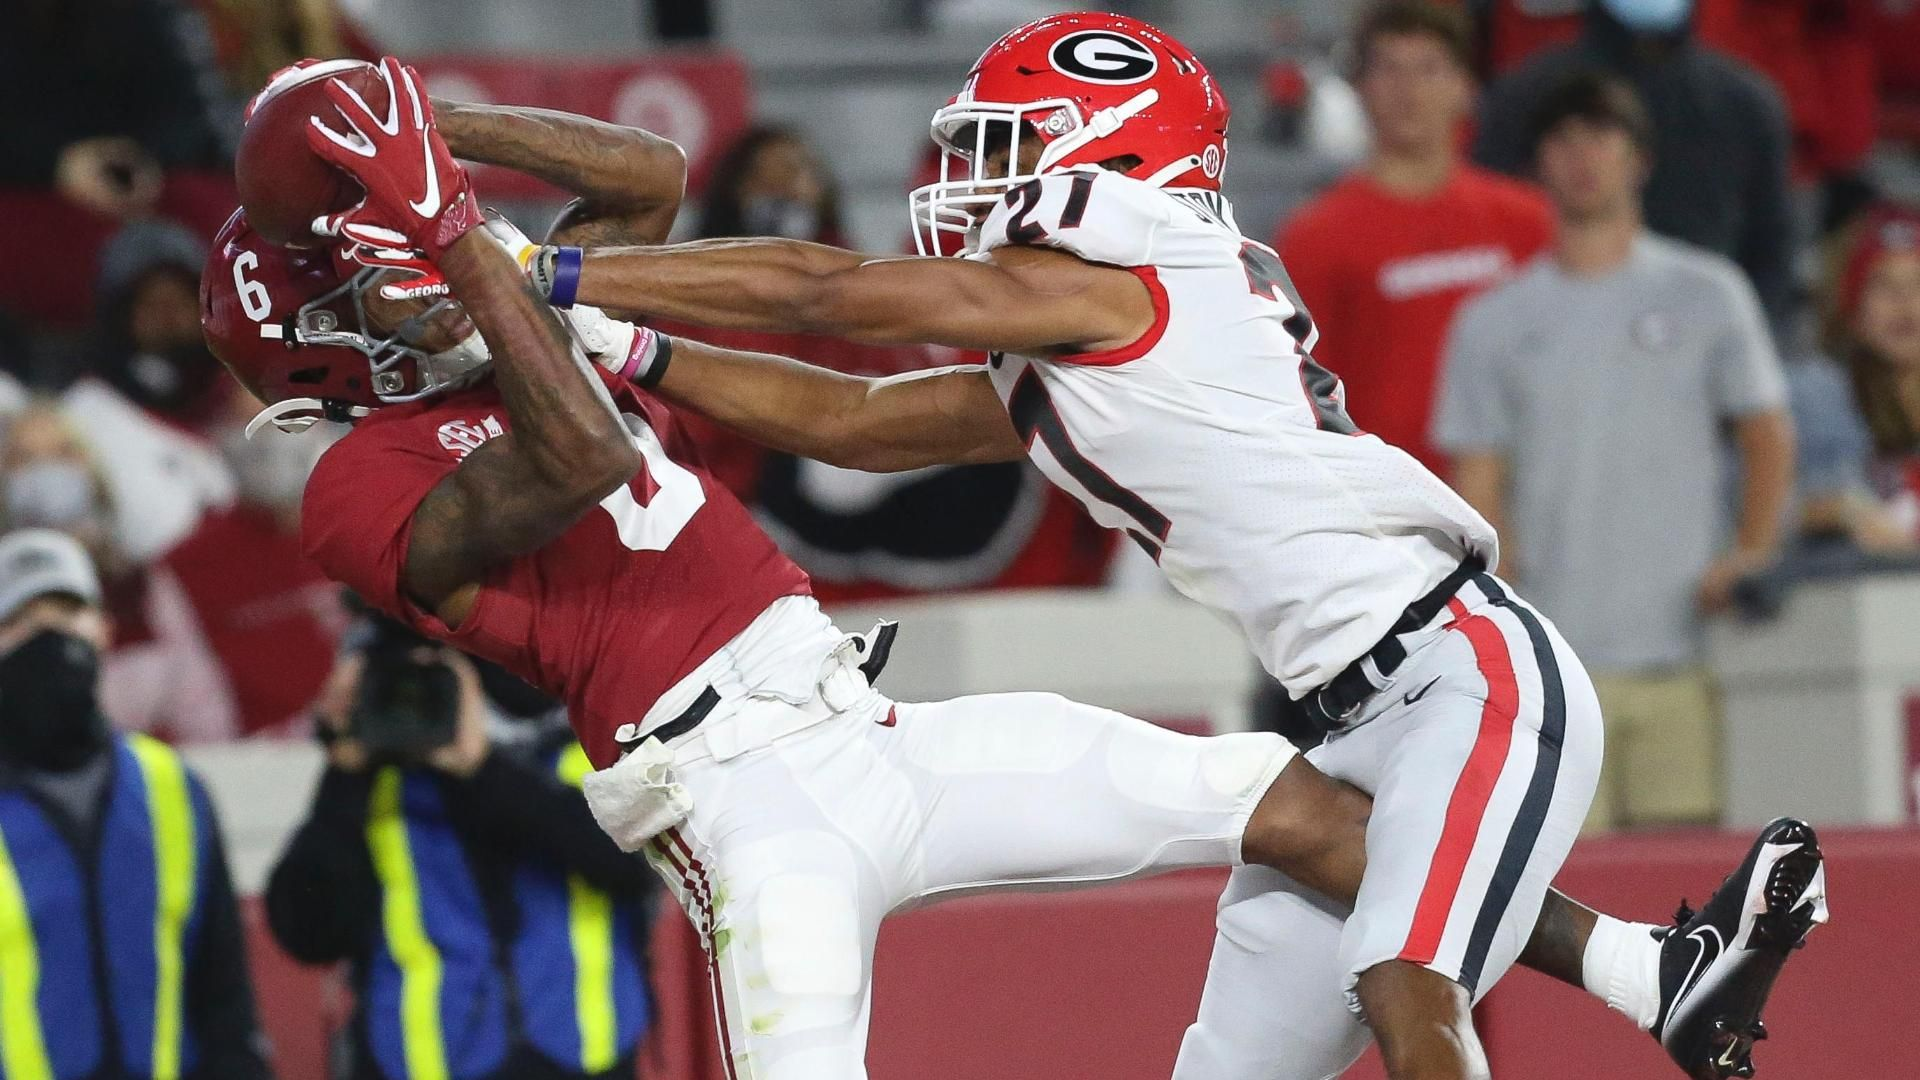 Elite WR play propels No. 2 Bama past No. 3 UGA